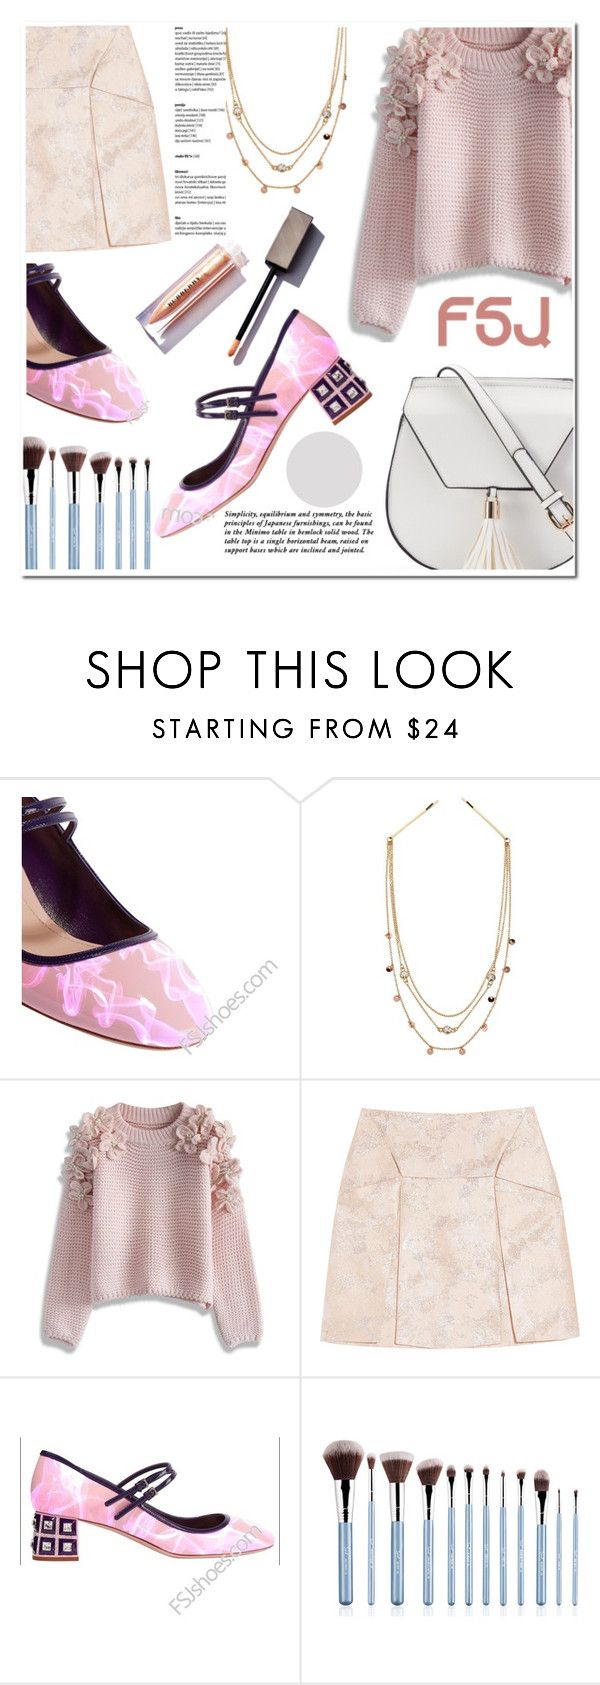 """FSJshoes"" by sofia10-1 ❤ liked on Polyvore featuring Topshop, Chicwish, Christopher Kane, Yoki and fsjshoes"